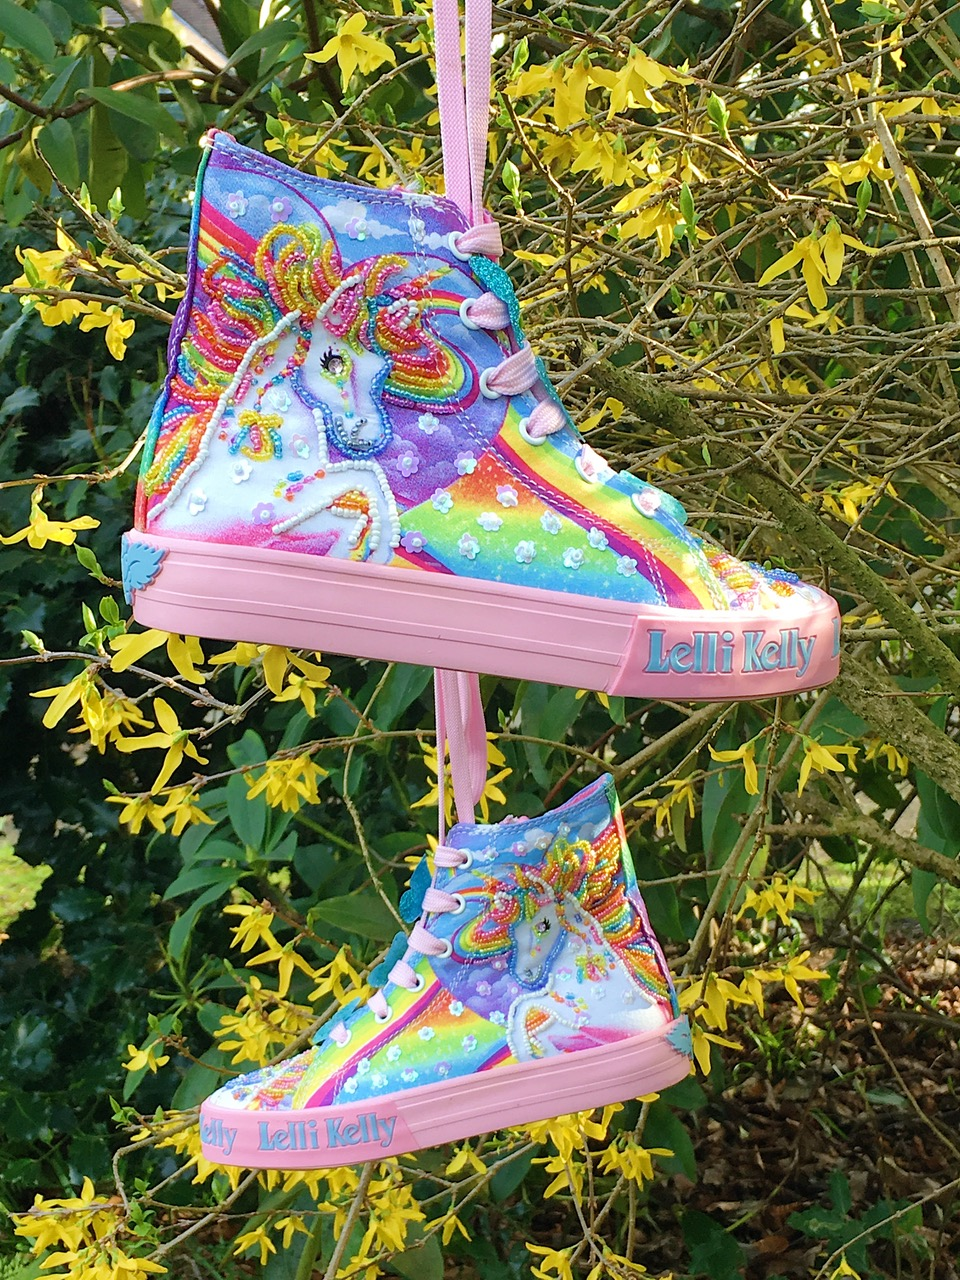 Lelli Kelly Unicorn Boots: The Most Wanted Girls Shoe This Summer